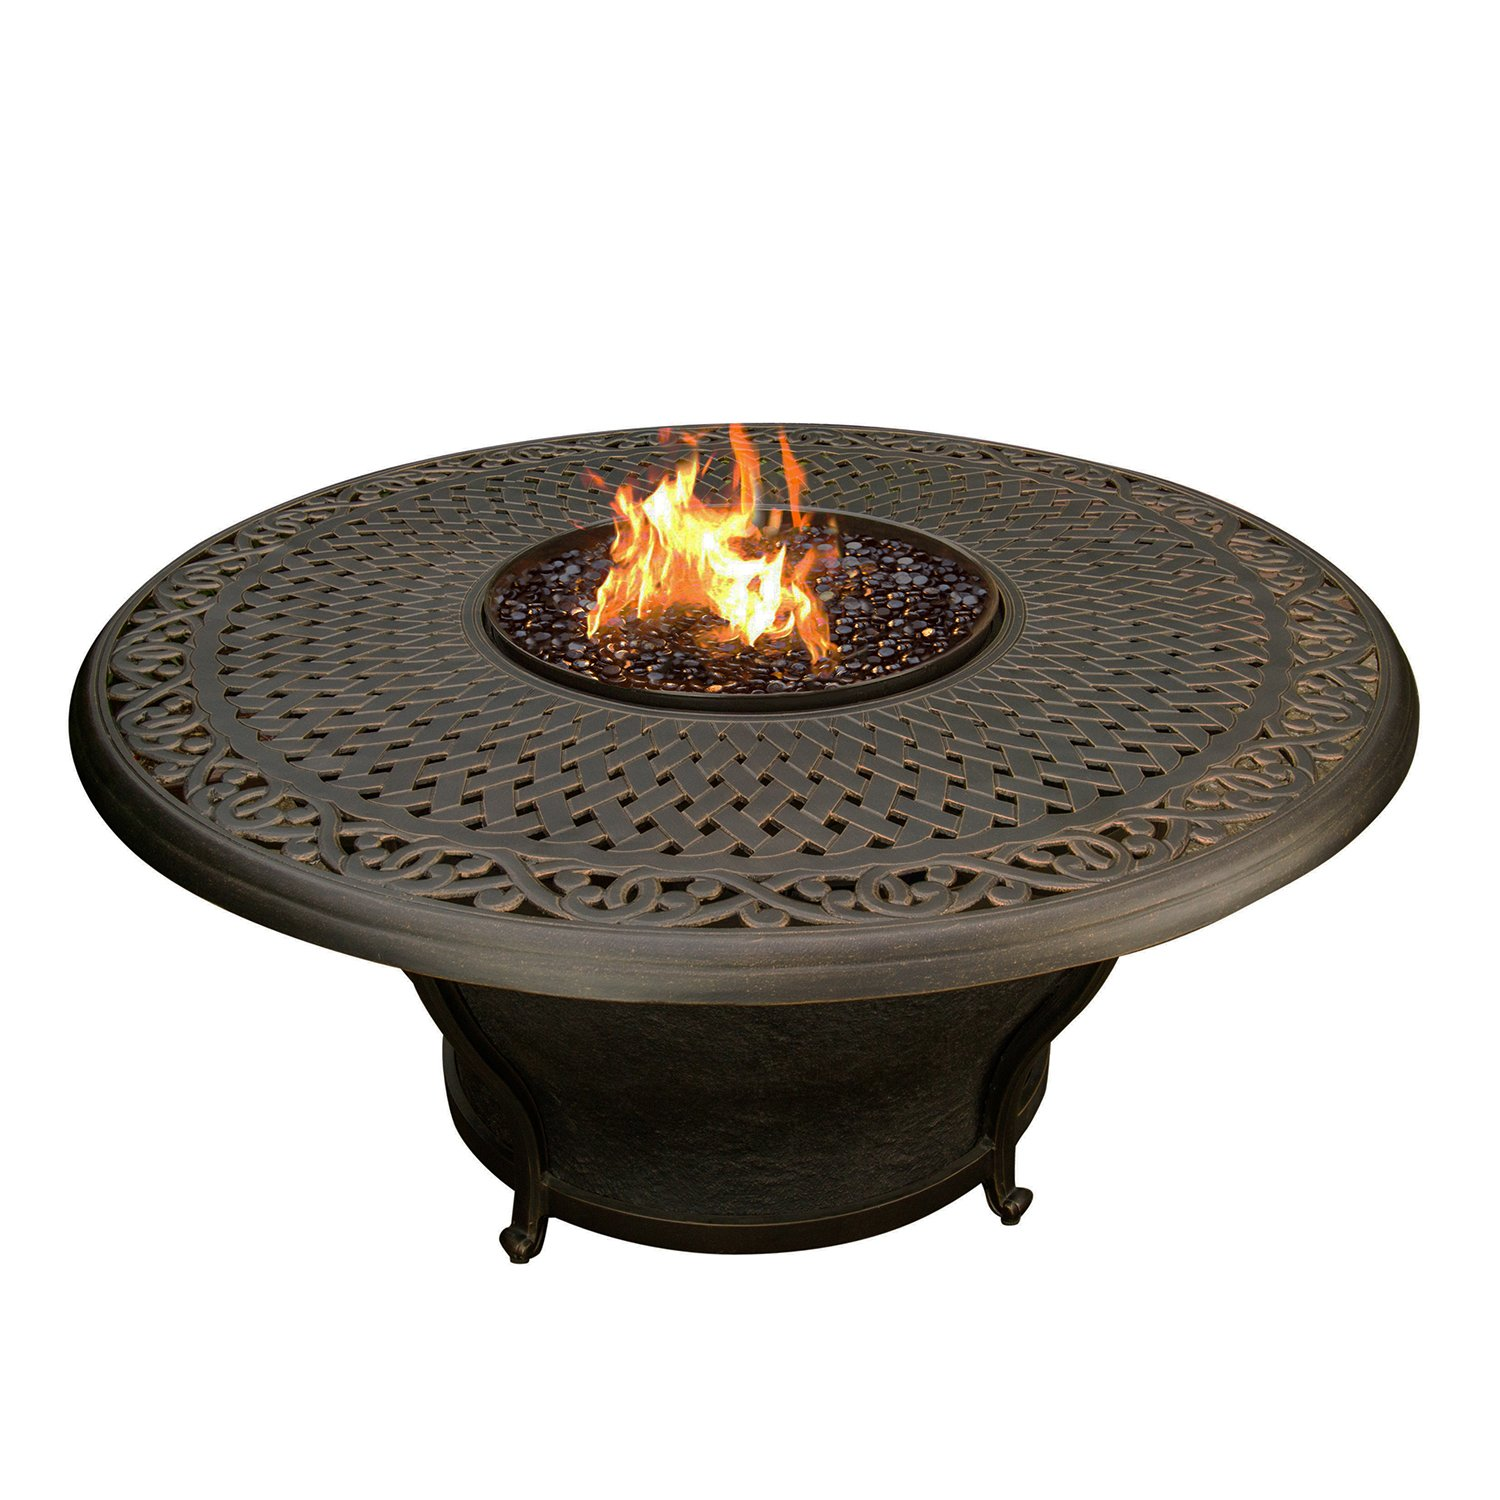 Oakland Living Charleston Round Gas Firepit Table, Antique Bronze AZ8206-RD48-GST-AB